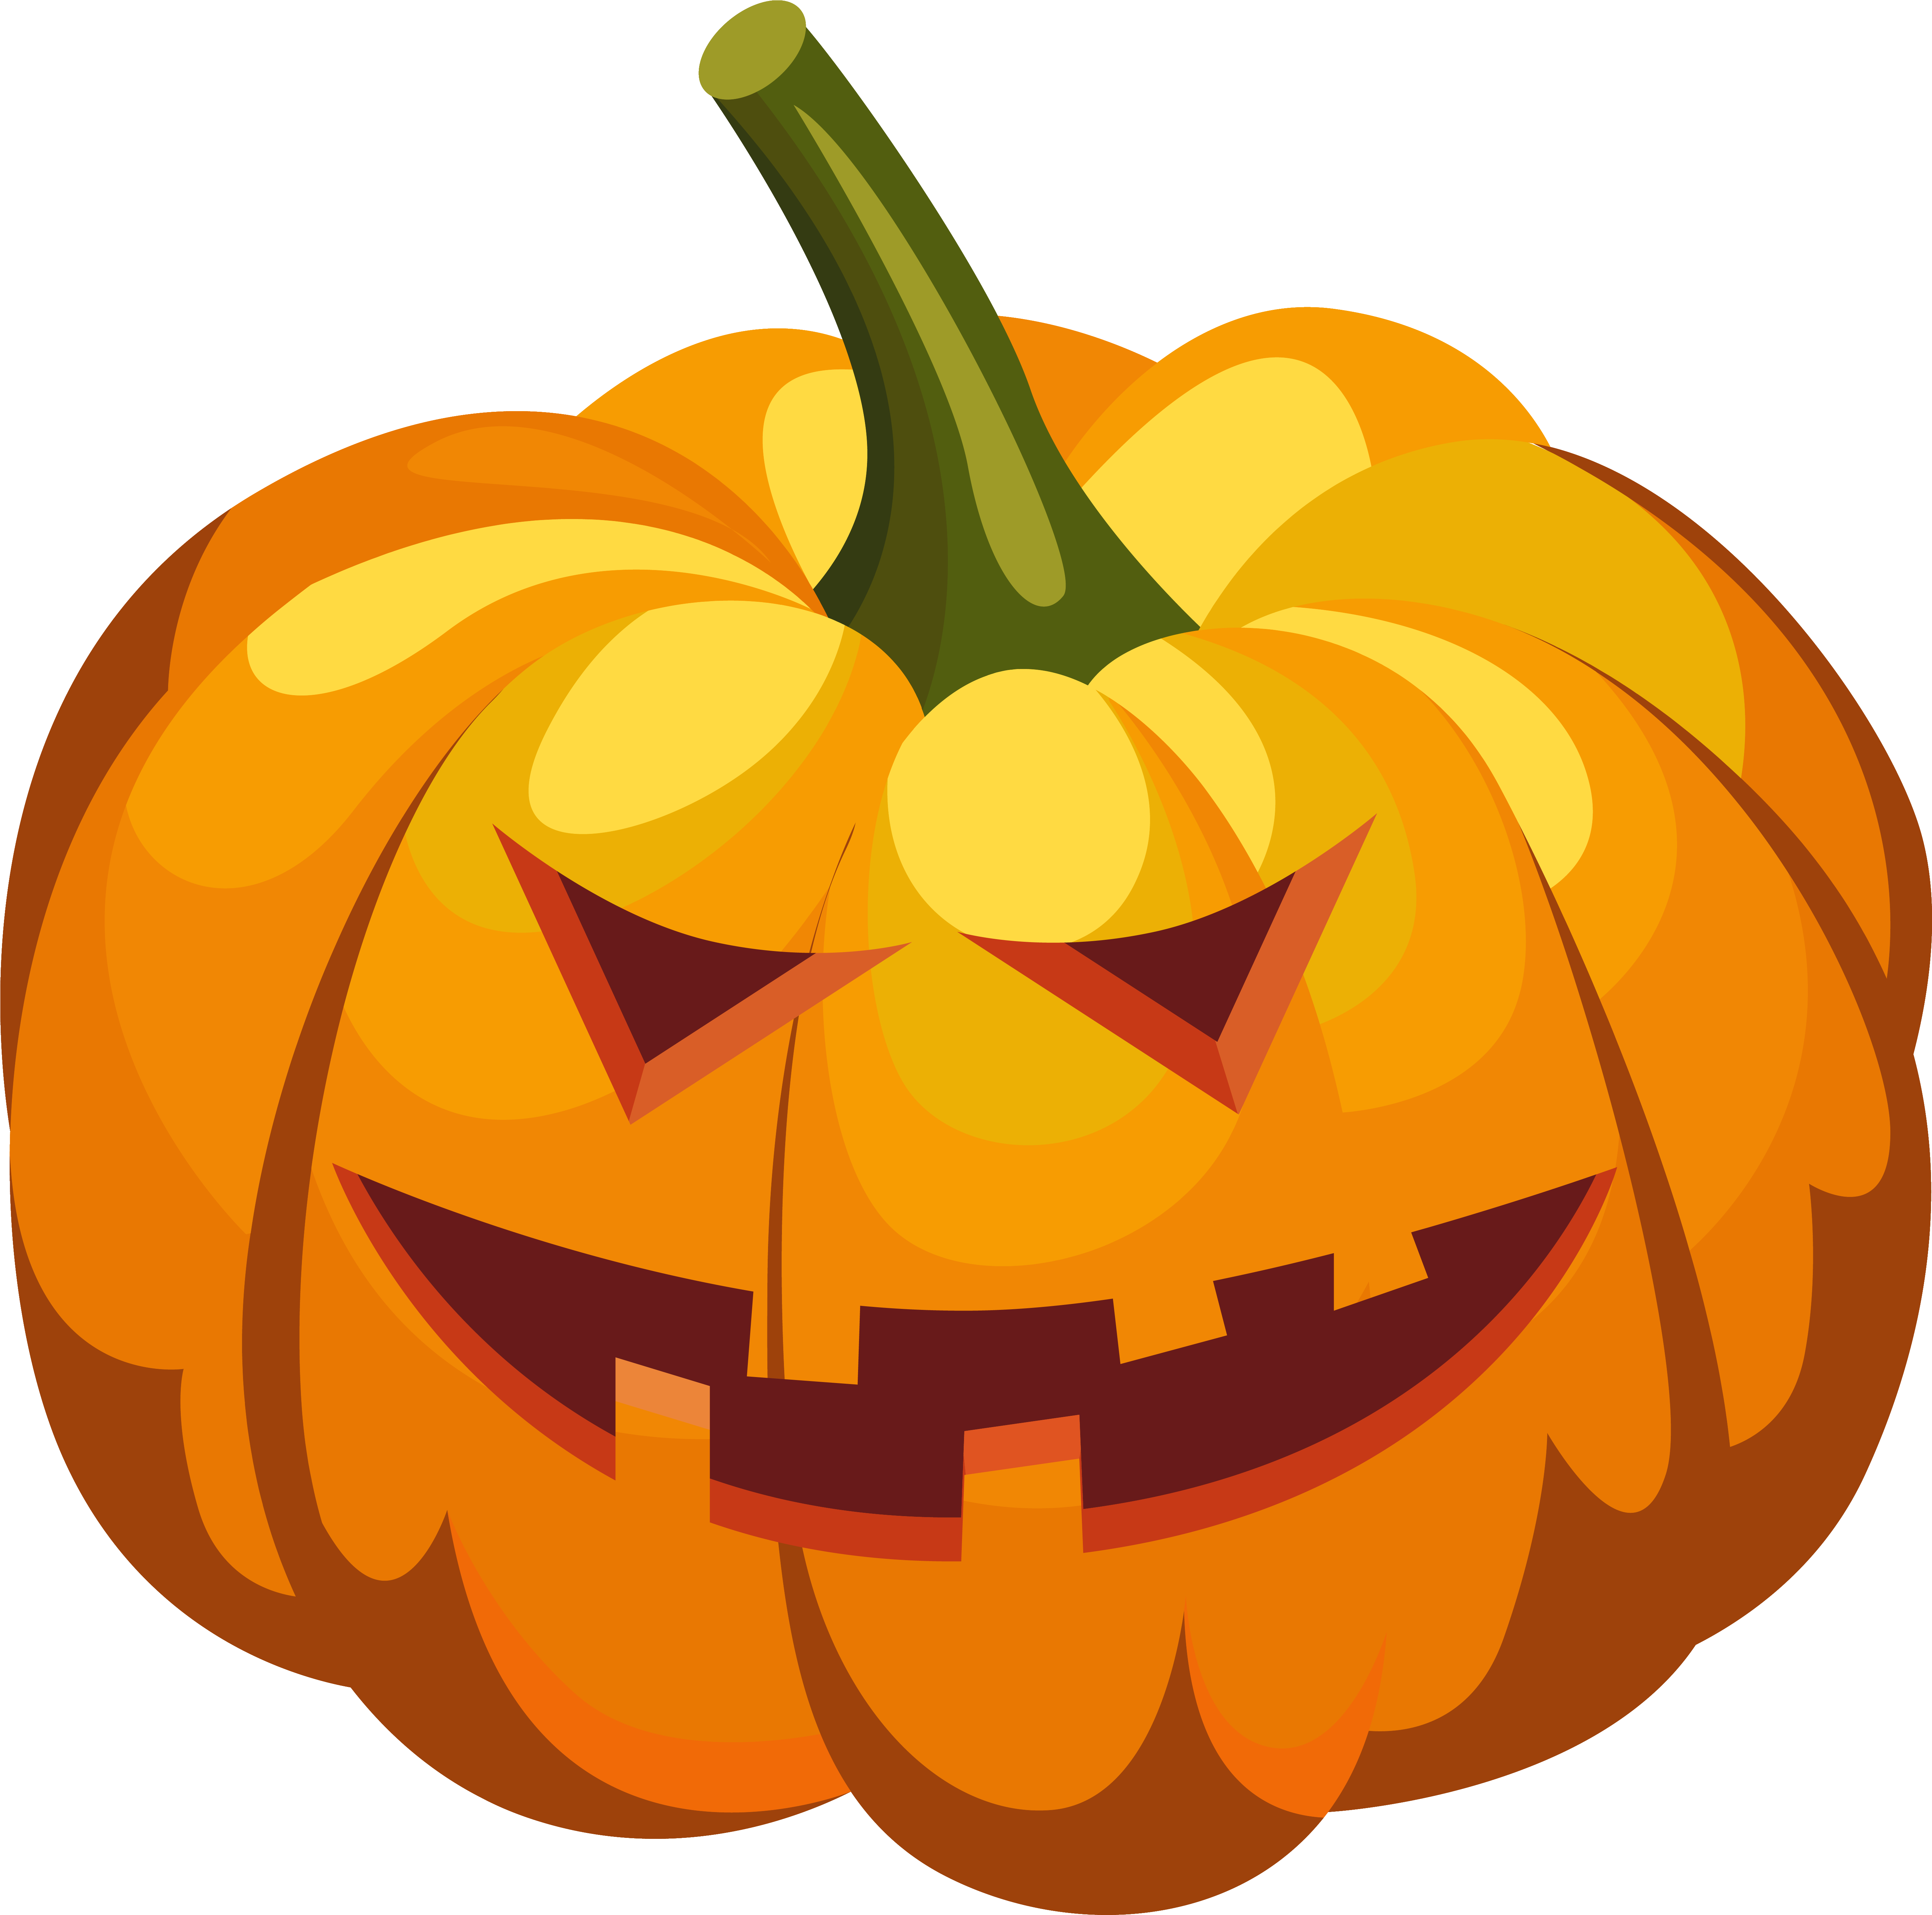 Download Halloween Pumpkin Png Scary Pumpkin Clipart Full Size Png Image Pngkit